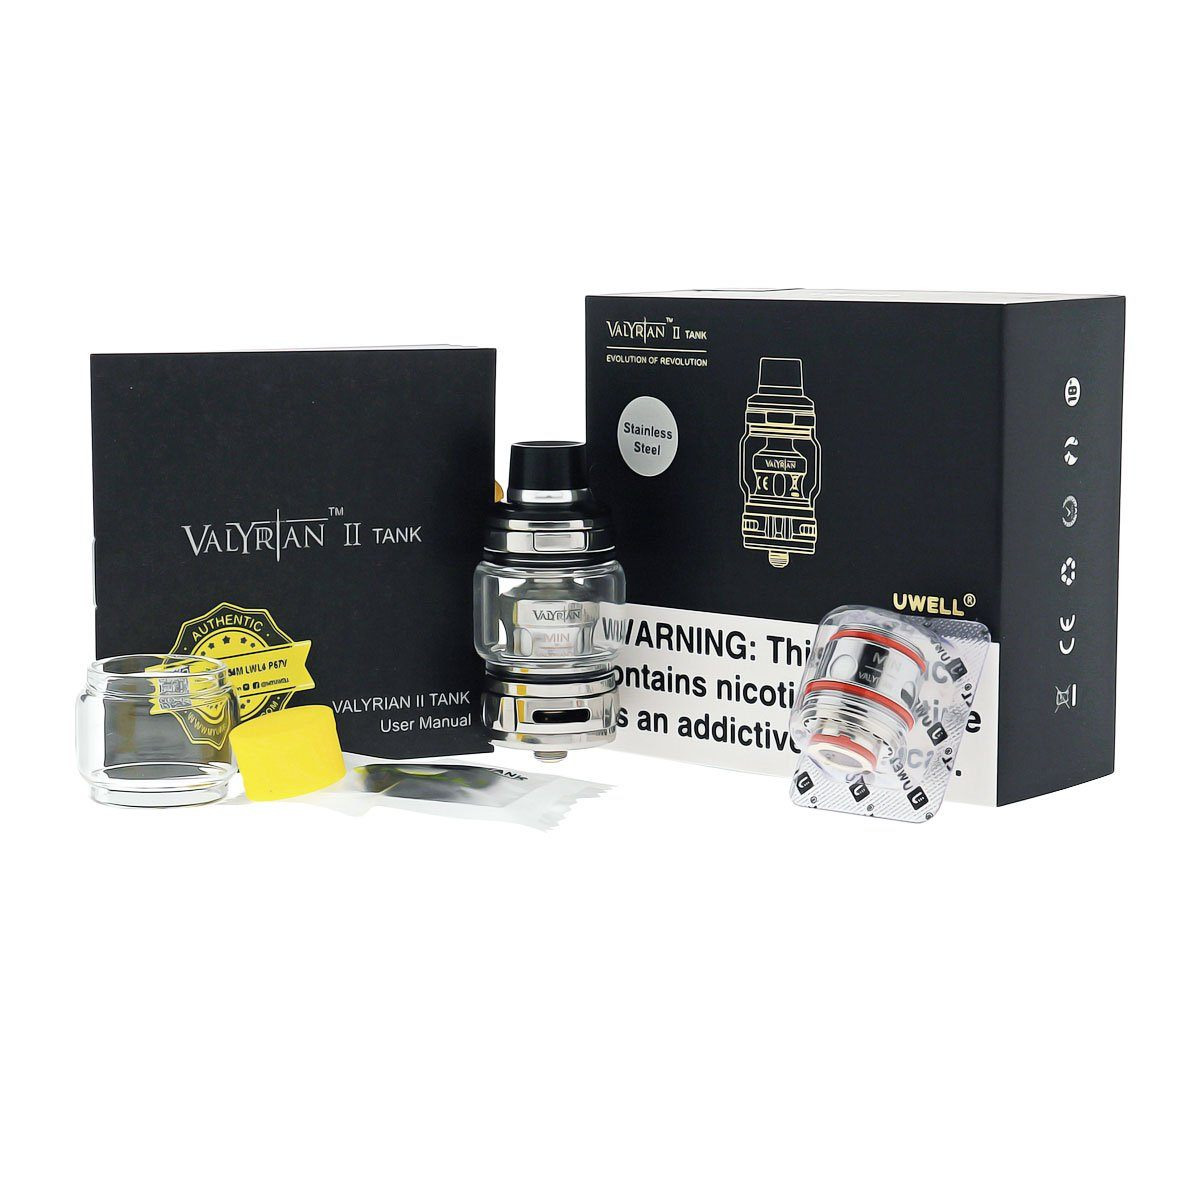 Uwell Valyrian II Sub-Ohm Tank - Package Contents